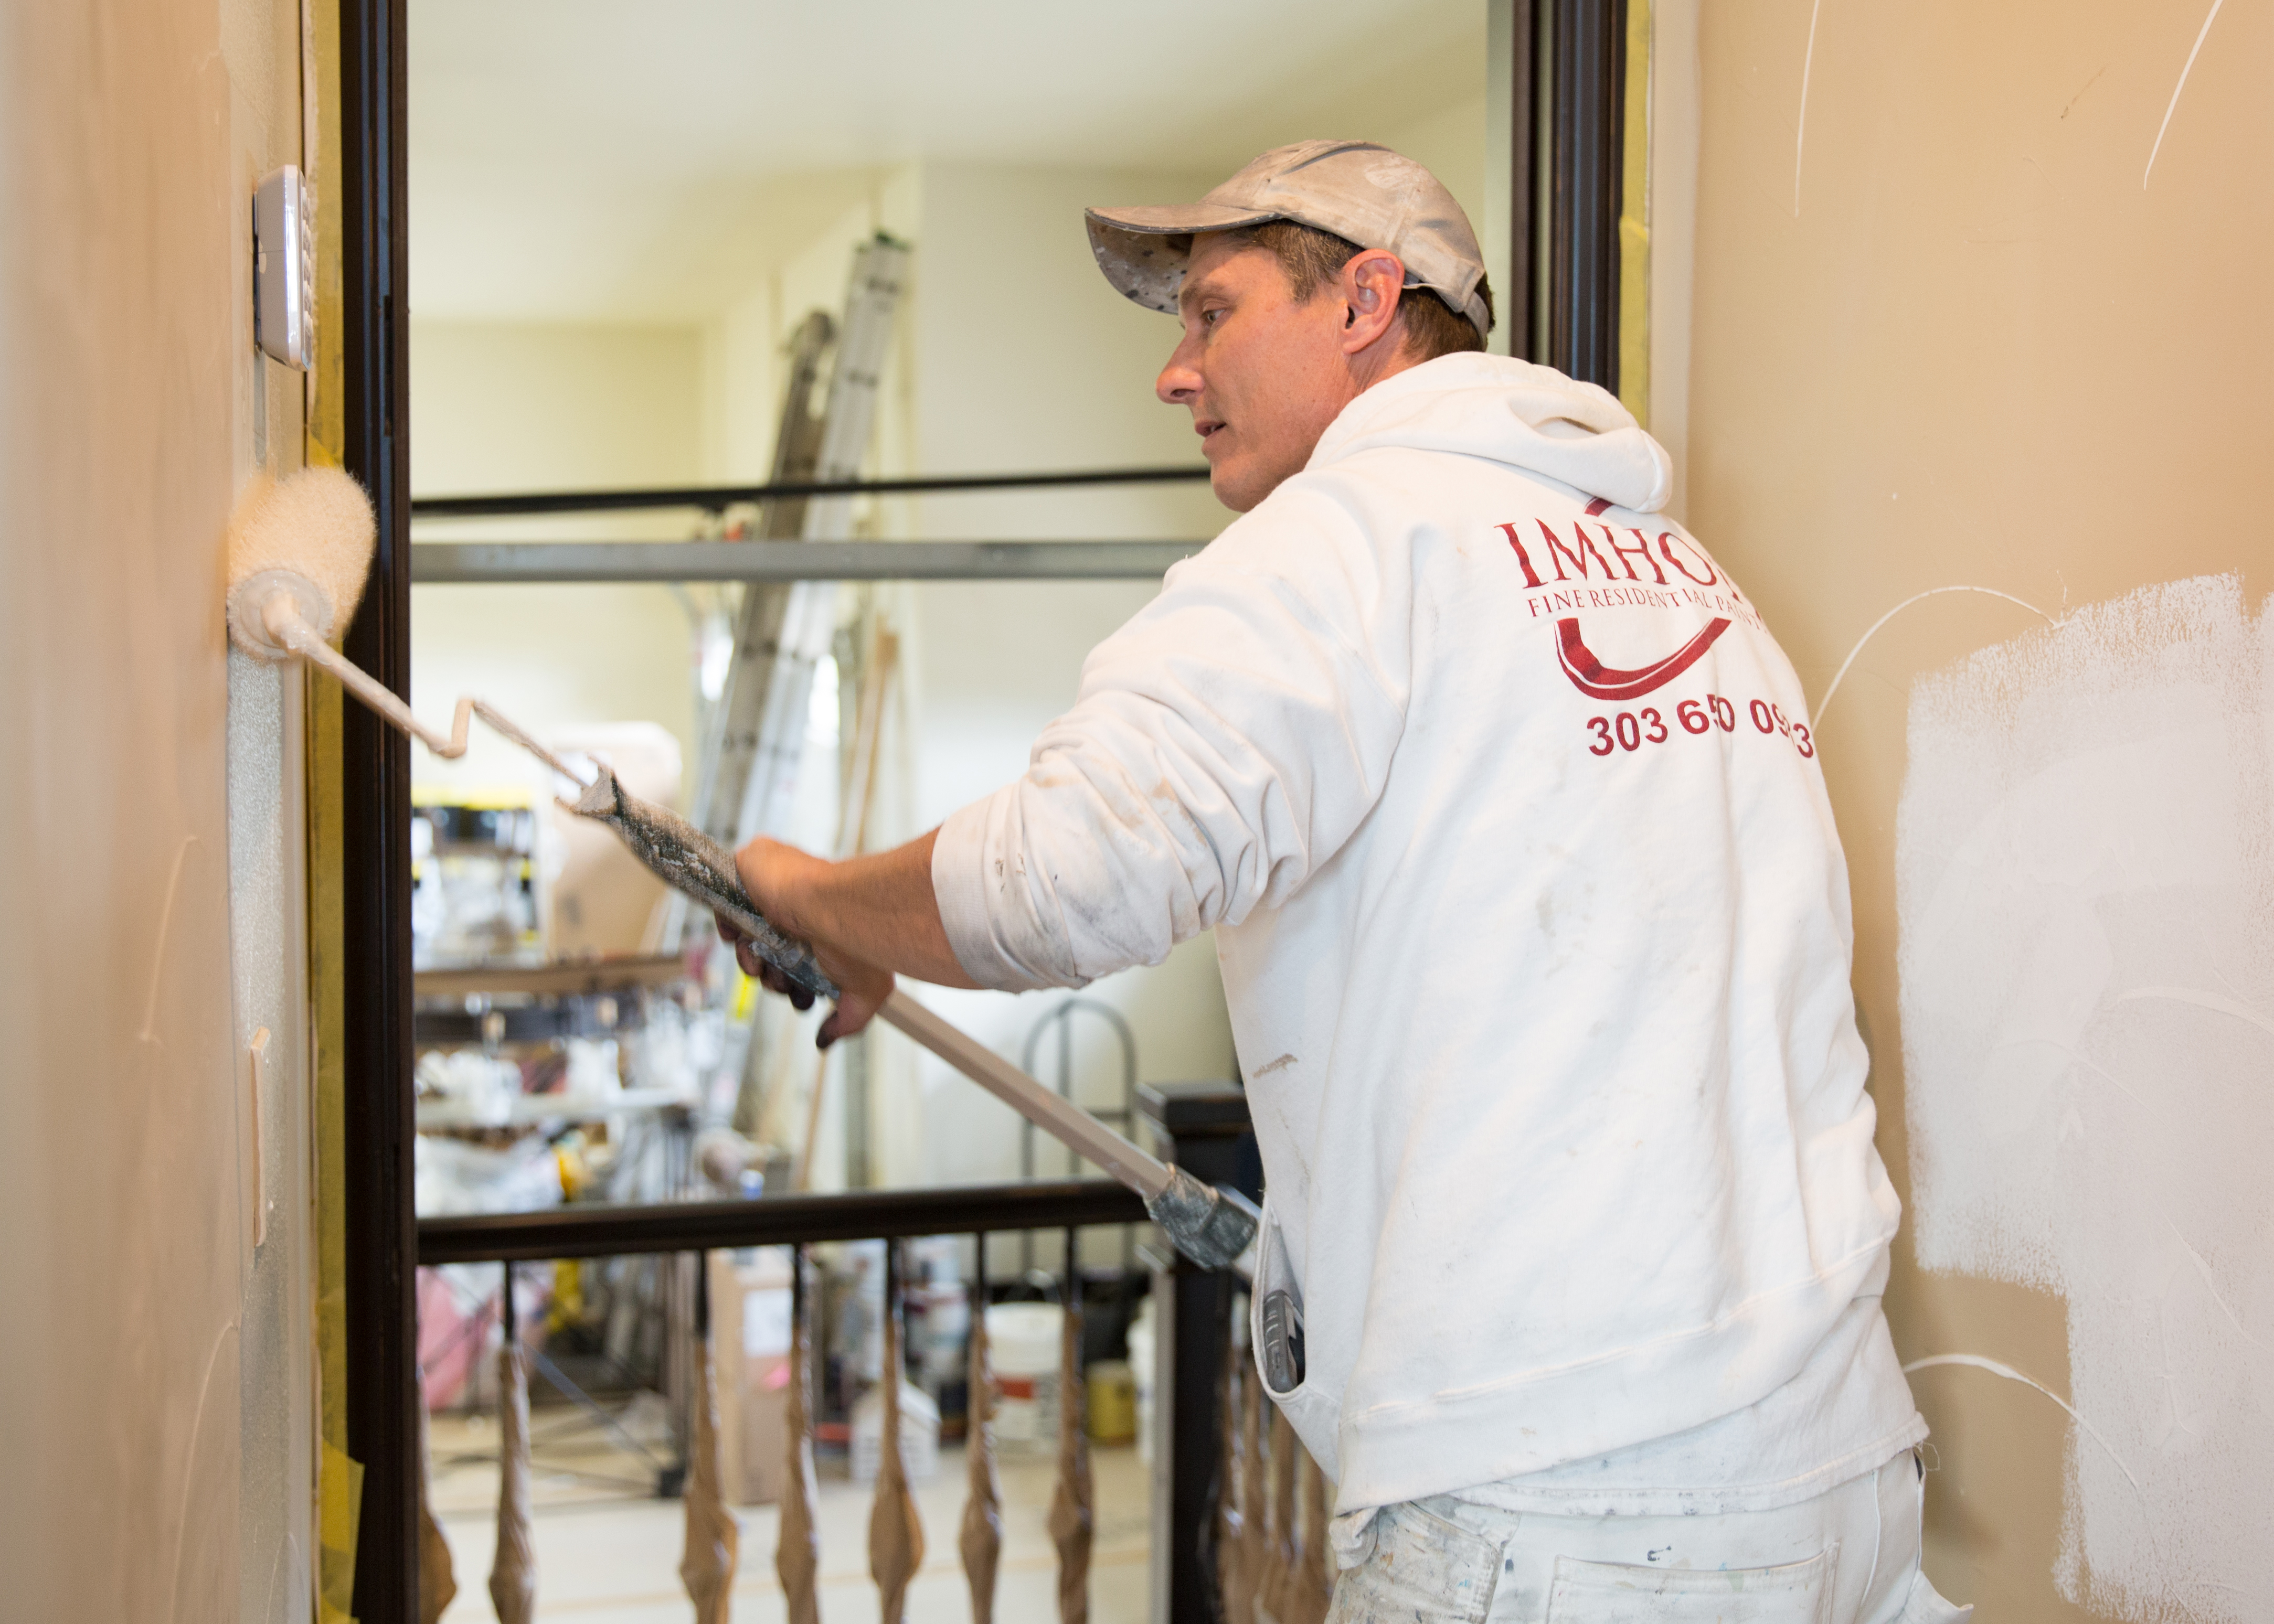 Imhoff Residential Painting & Finishing